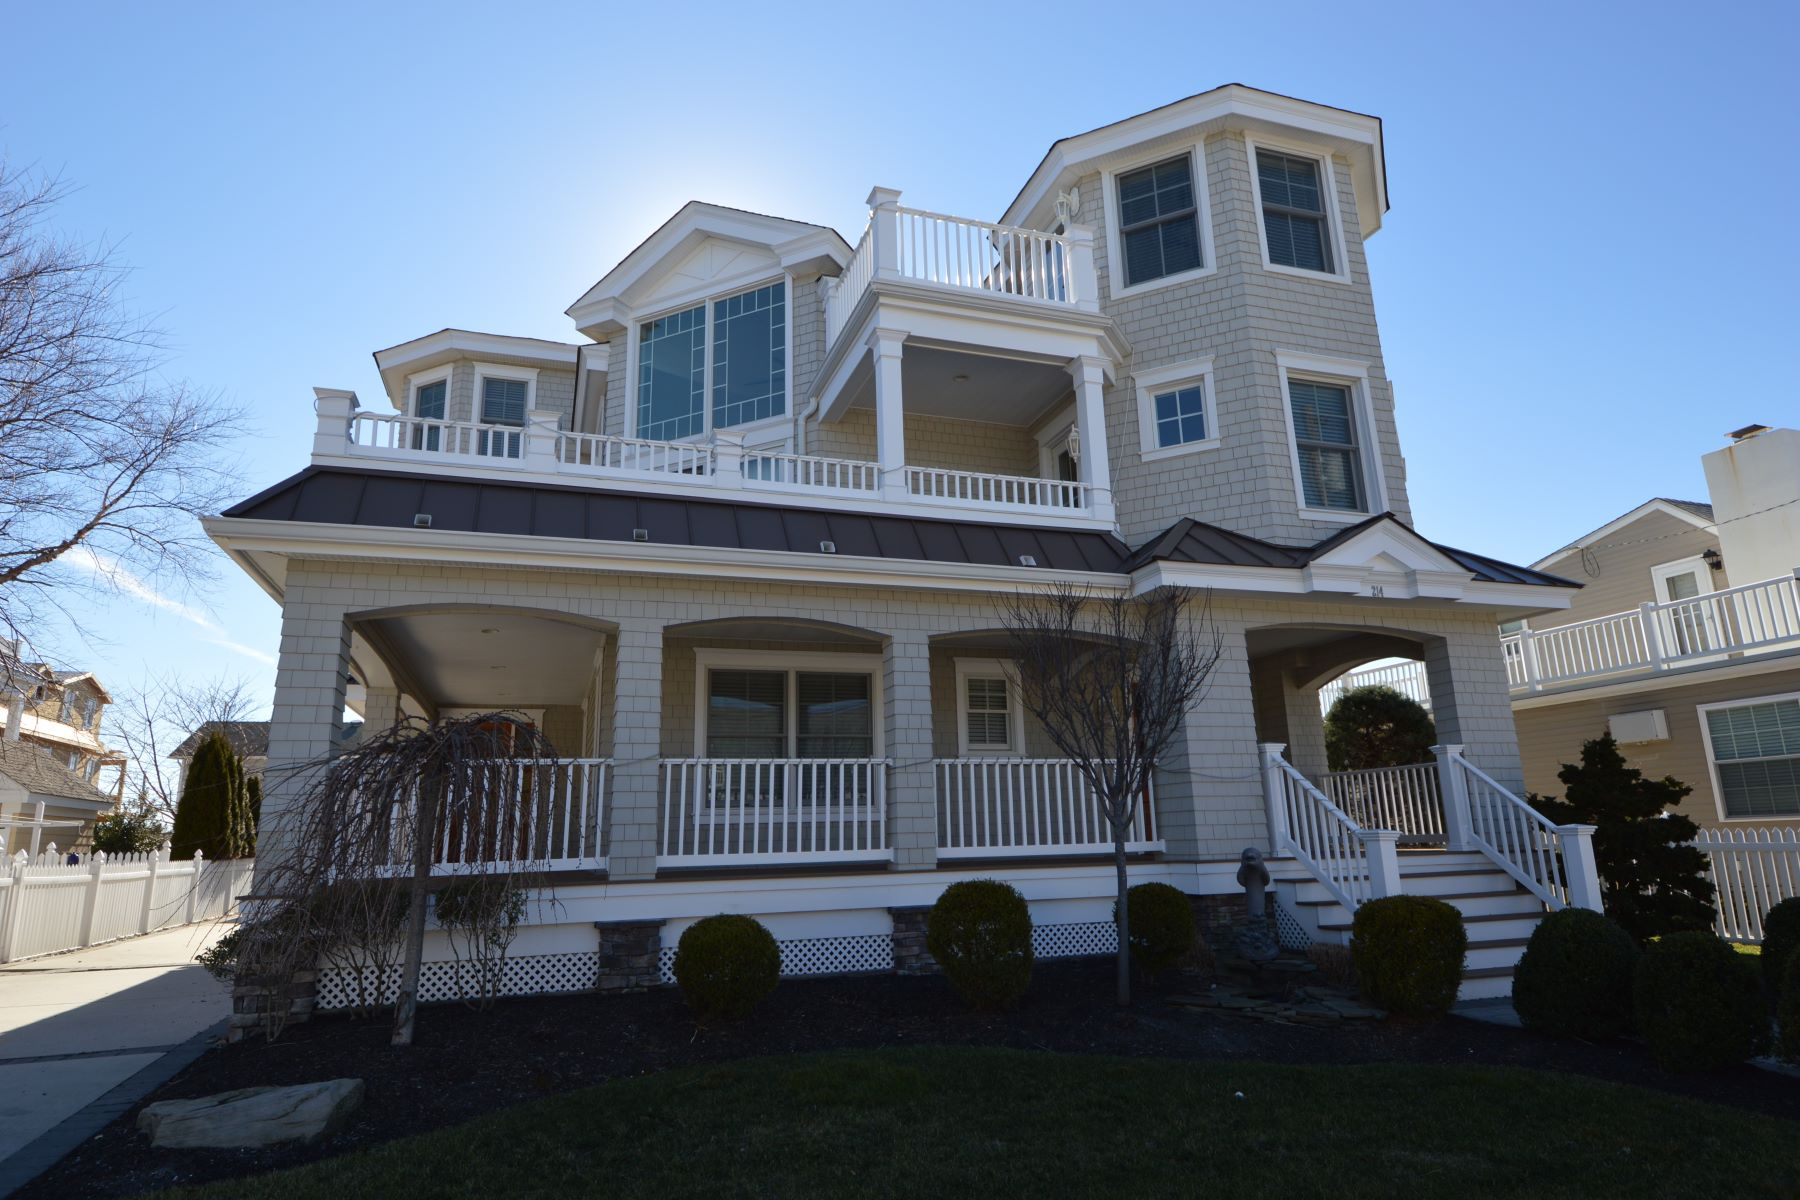 Single Family Home for Rent at Elegant Island Home 214 69th Street, Avalon, New Jersey 08202 United States